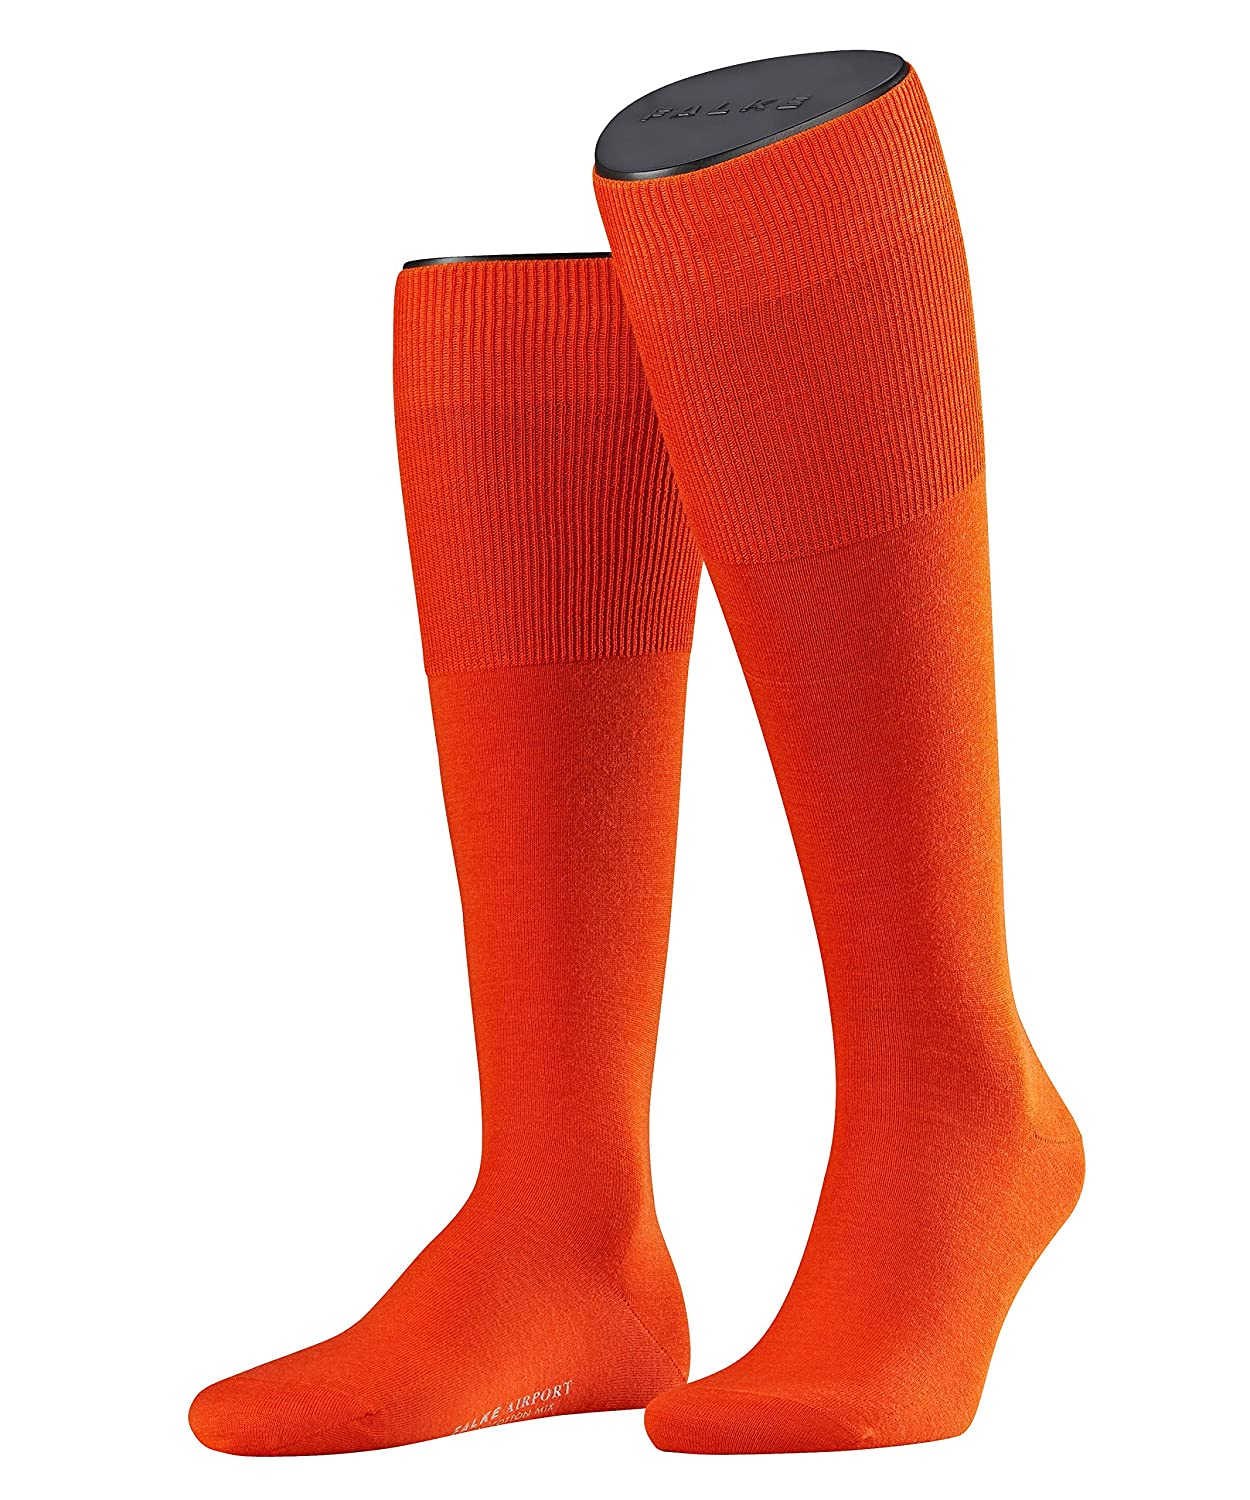 Falke Men's Airport Knee-High Socks FALKE KGaA 15435